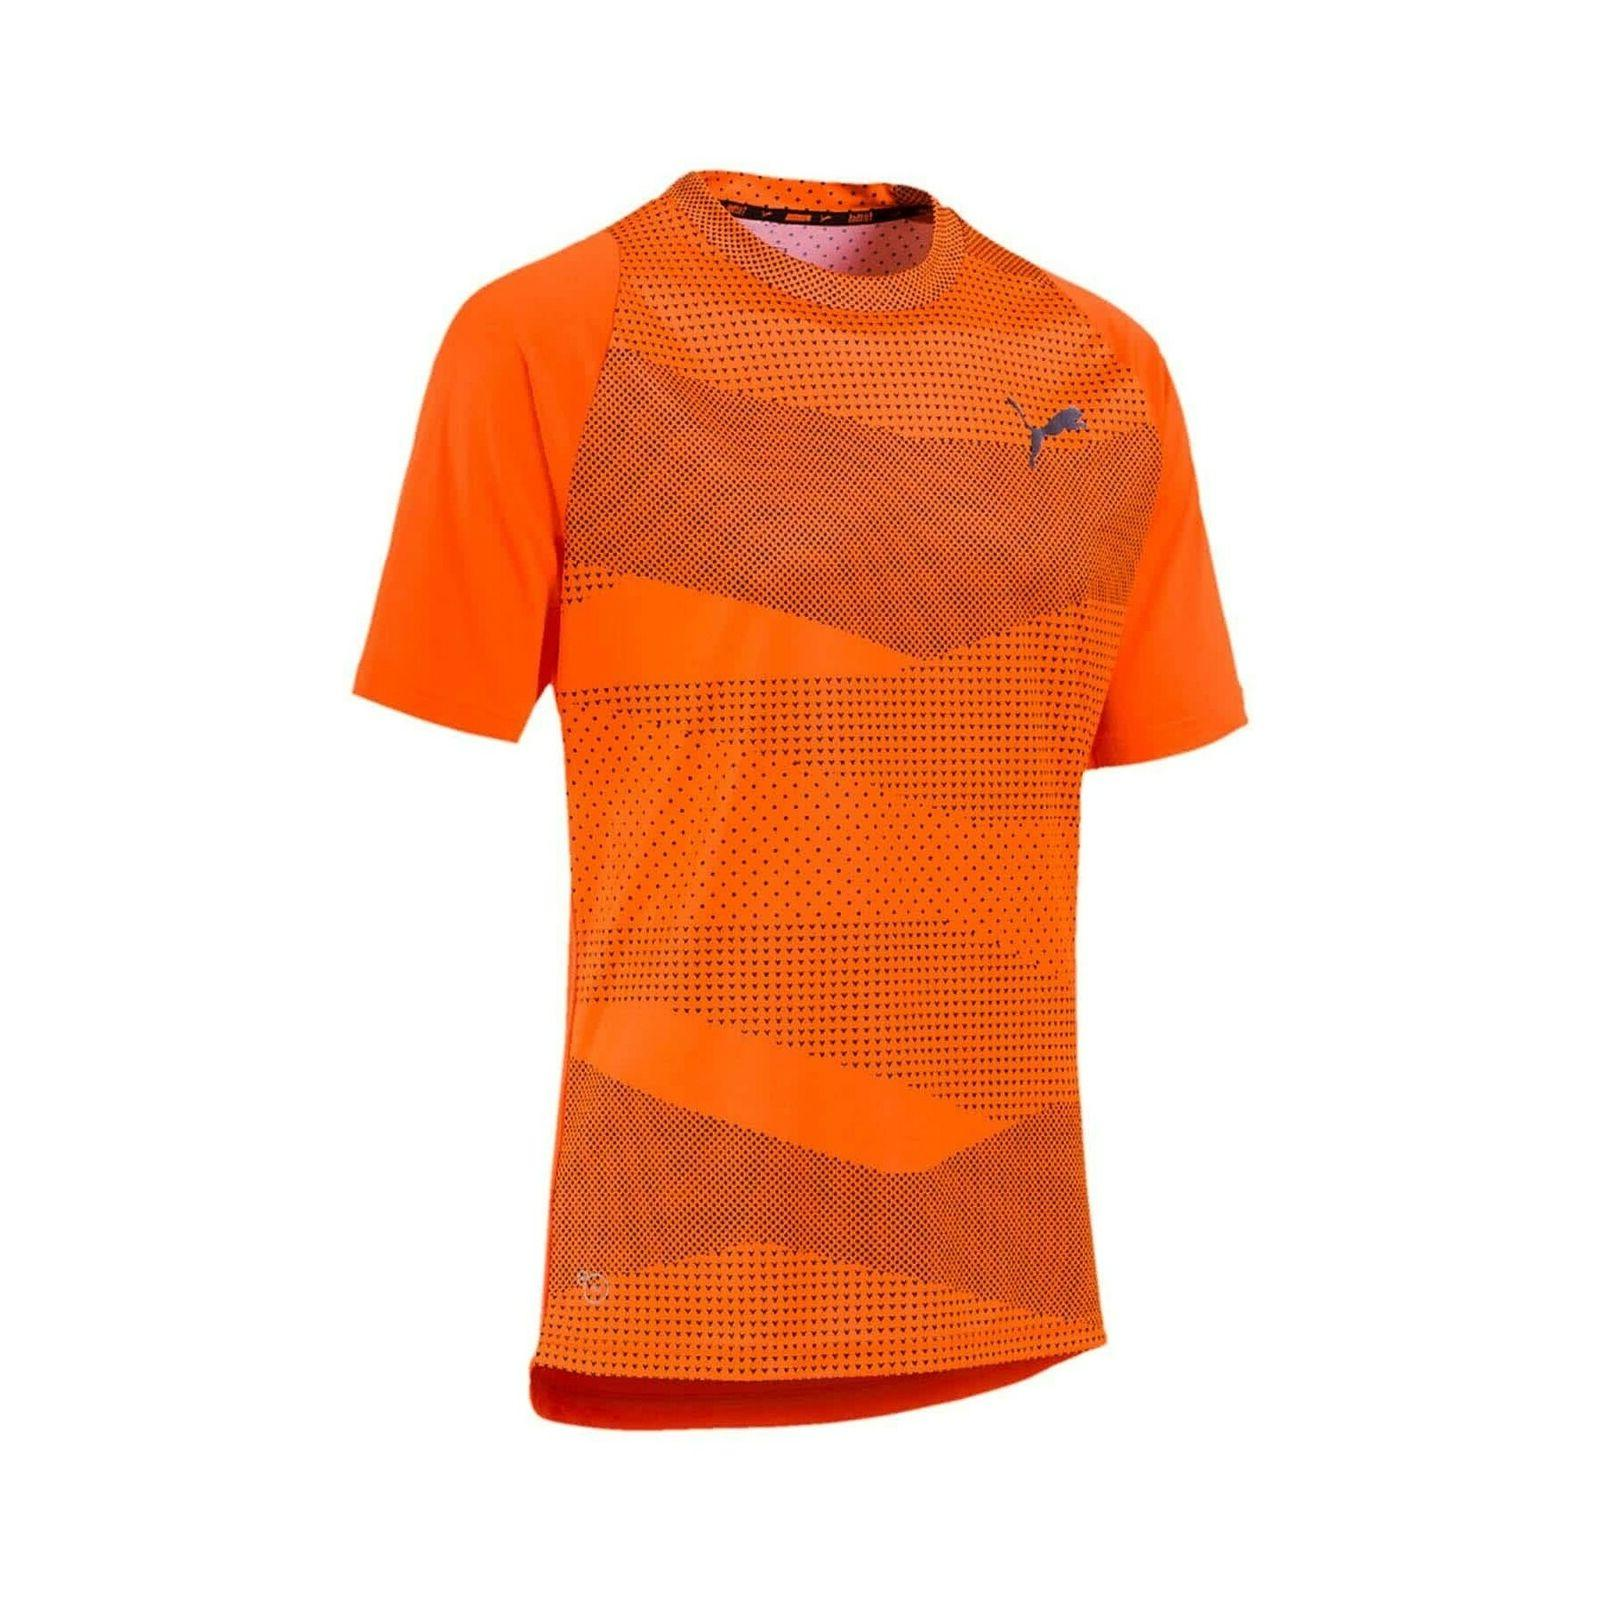 Puma Football Next Core Graphic Soccer Jersey Training Shirt